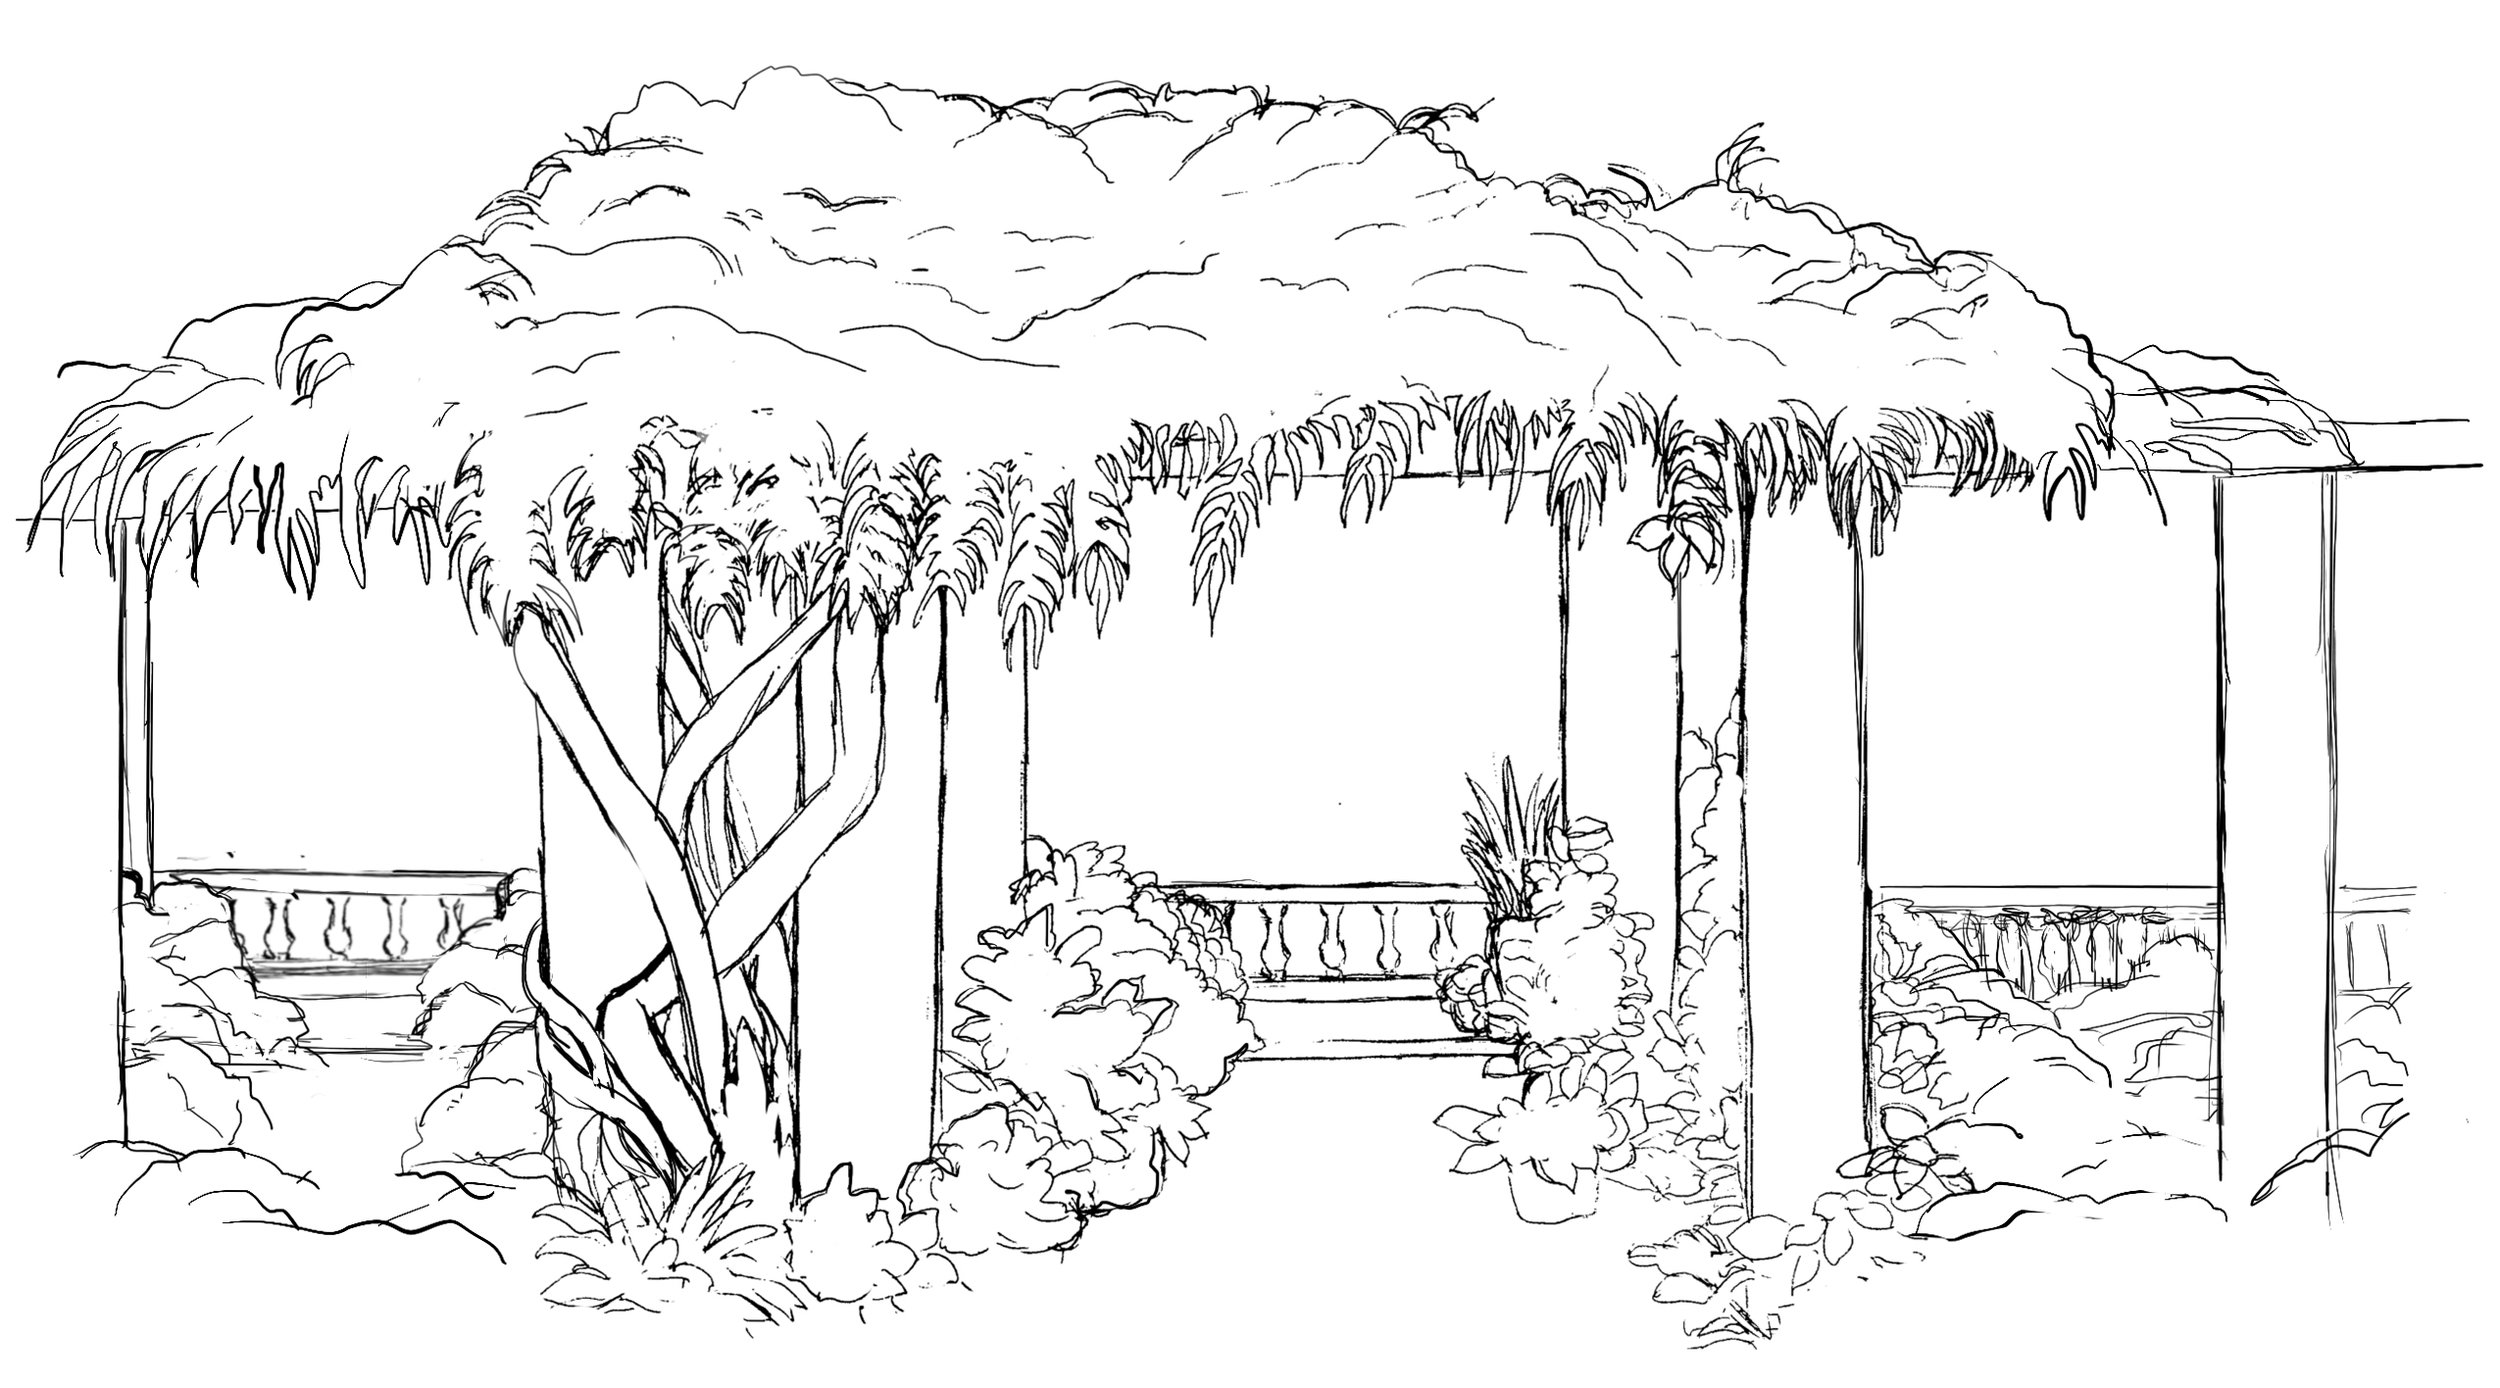 Ink illustration of Wave Hill's pergola